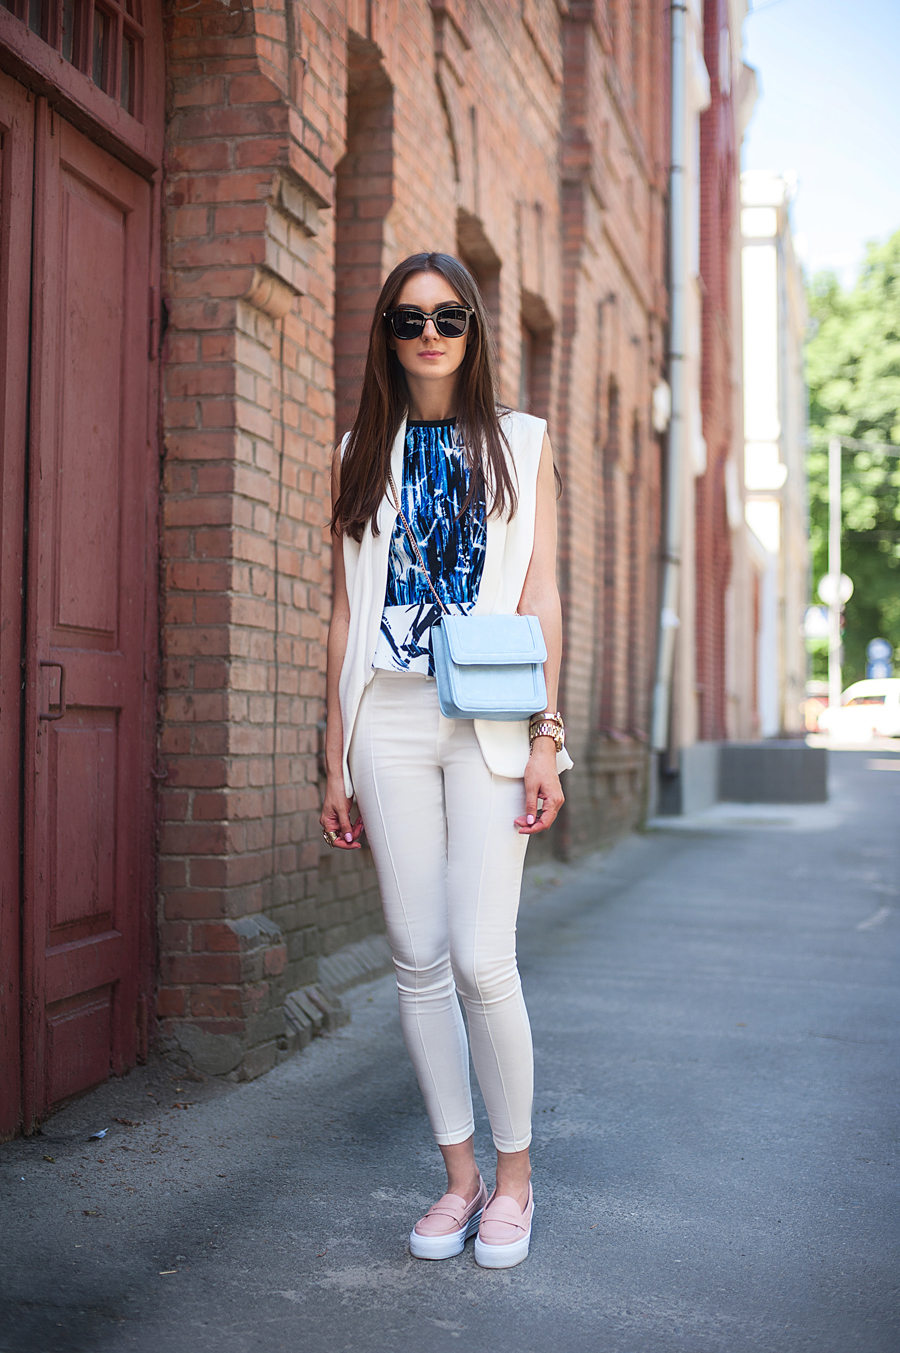 fashion_blogger_ukraine_art_prints_trends_outfit_pastel_bag_total_white_4